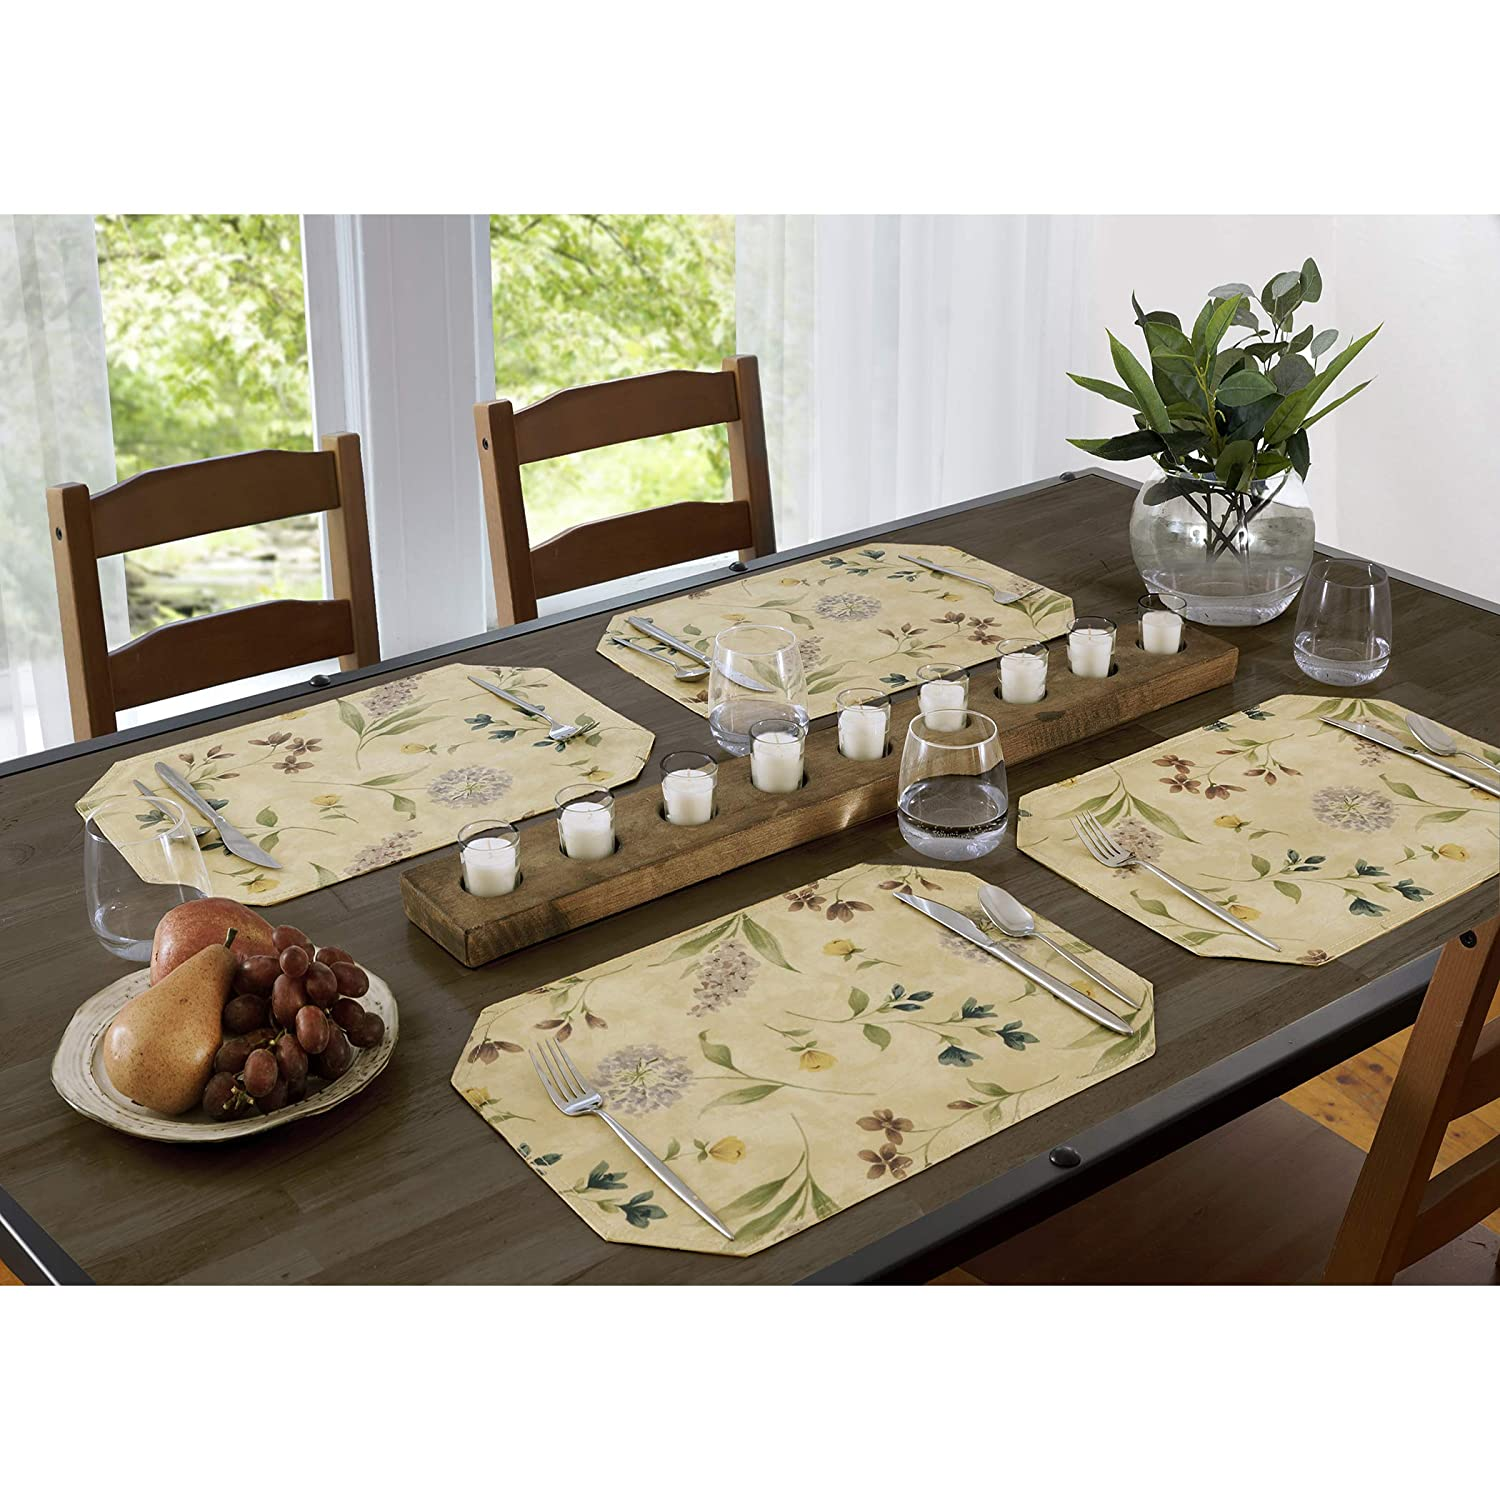 11.75-Inch by 18-Inch Placemats Set of 4 EVERYDAY LUXURIES Botanical Toss Flannel Backed Indoor Outdoor Vinyl Table Linens